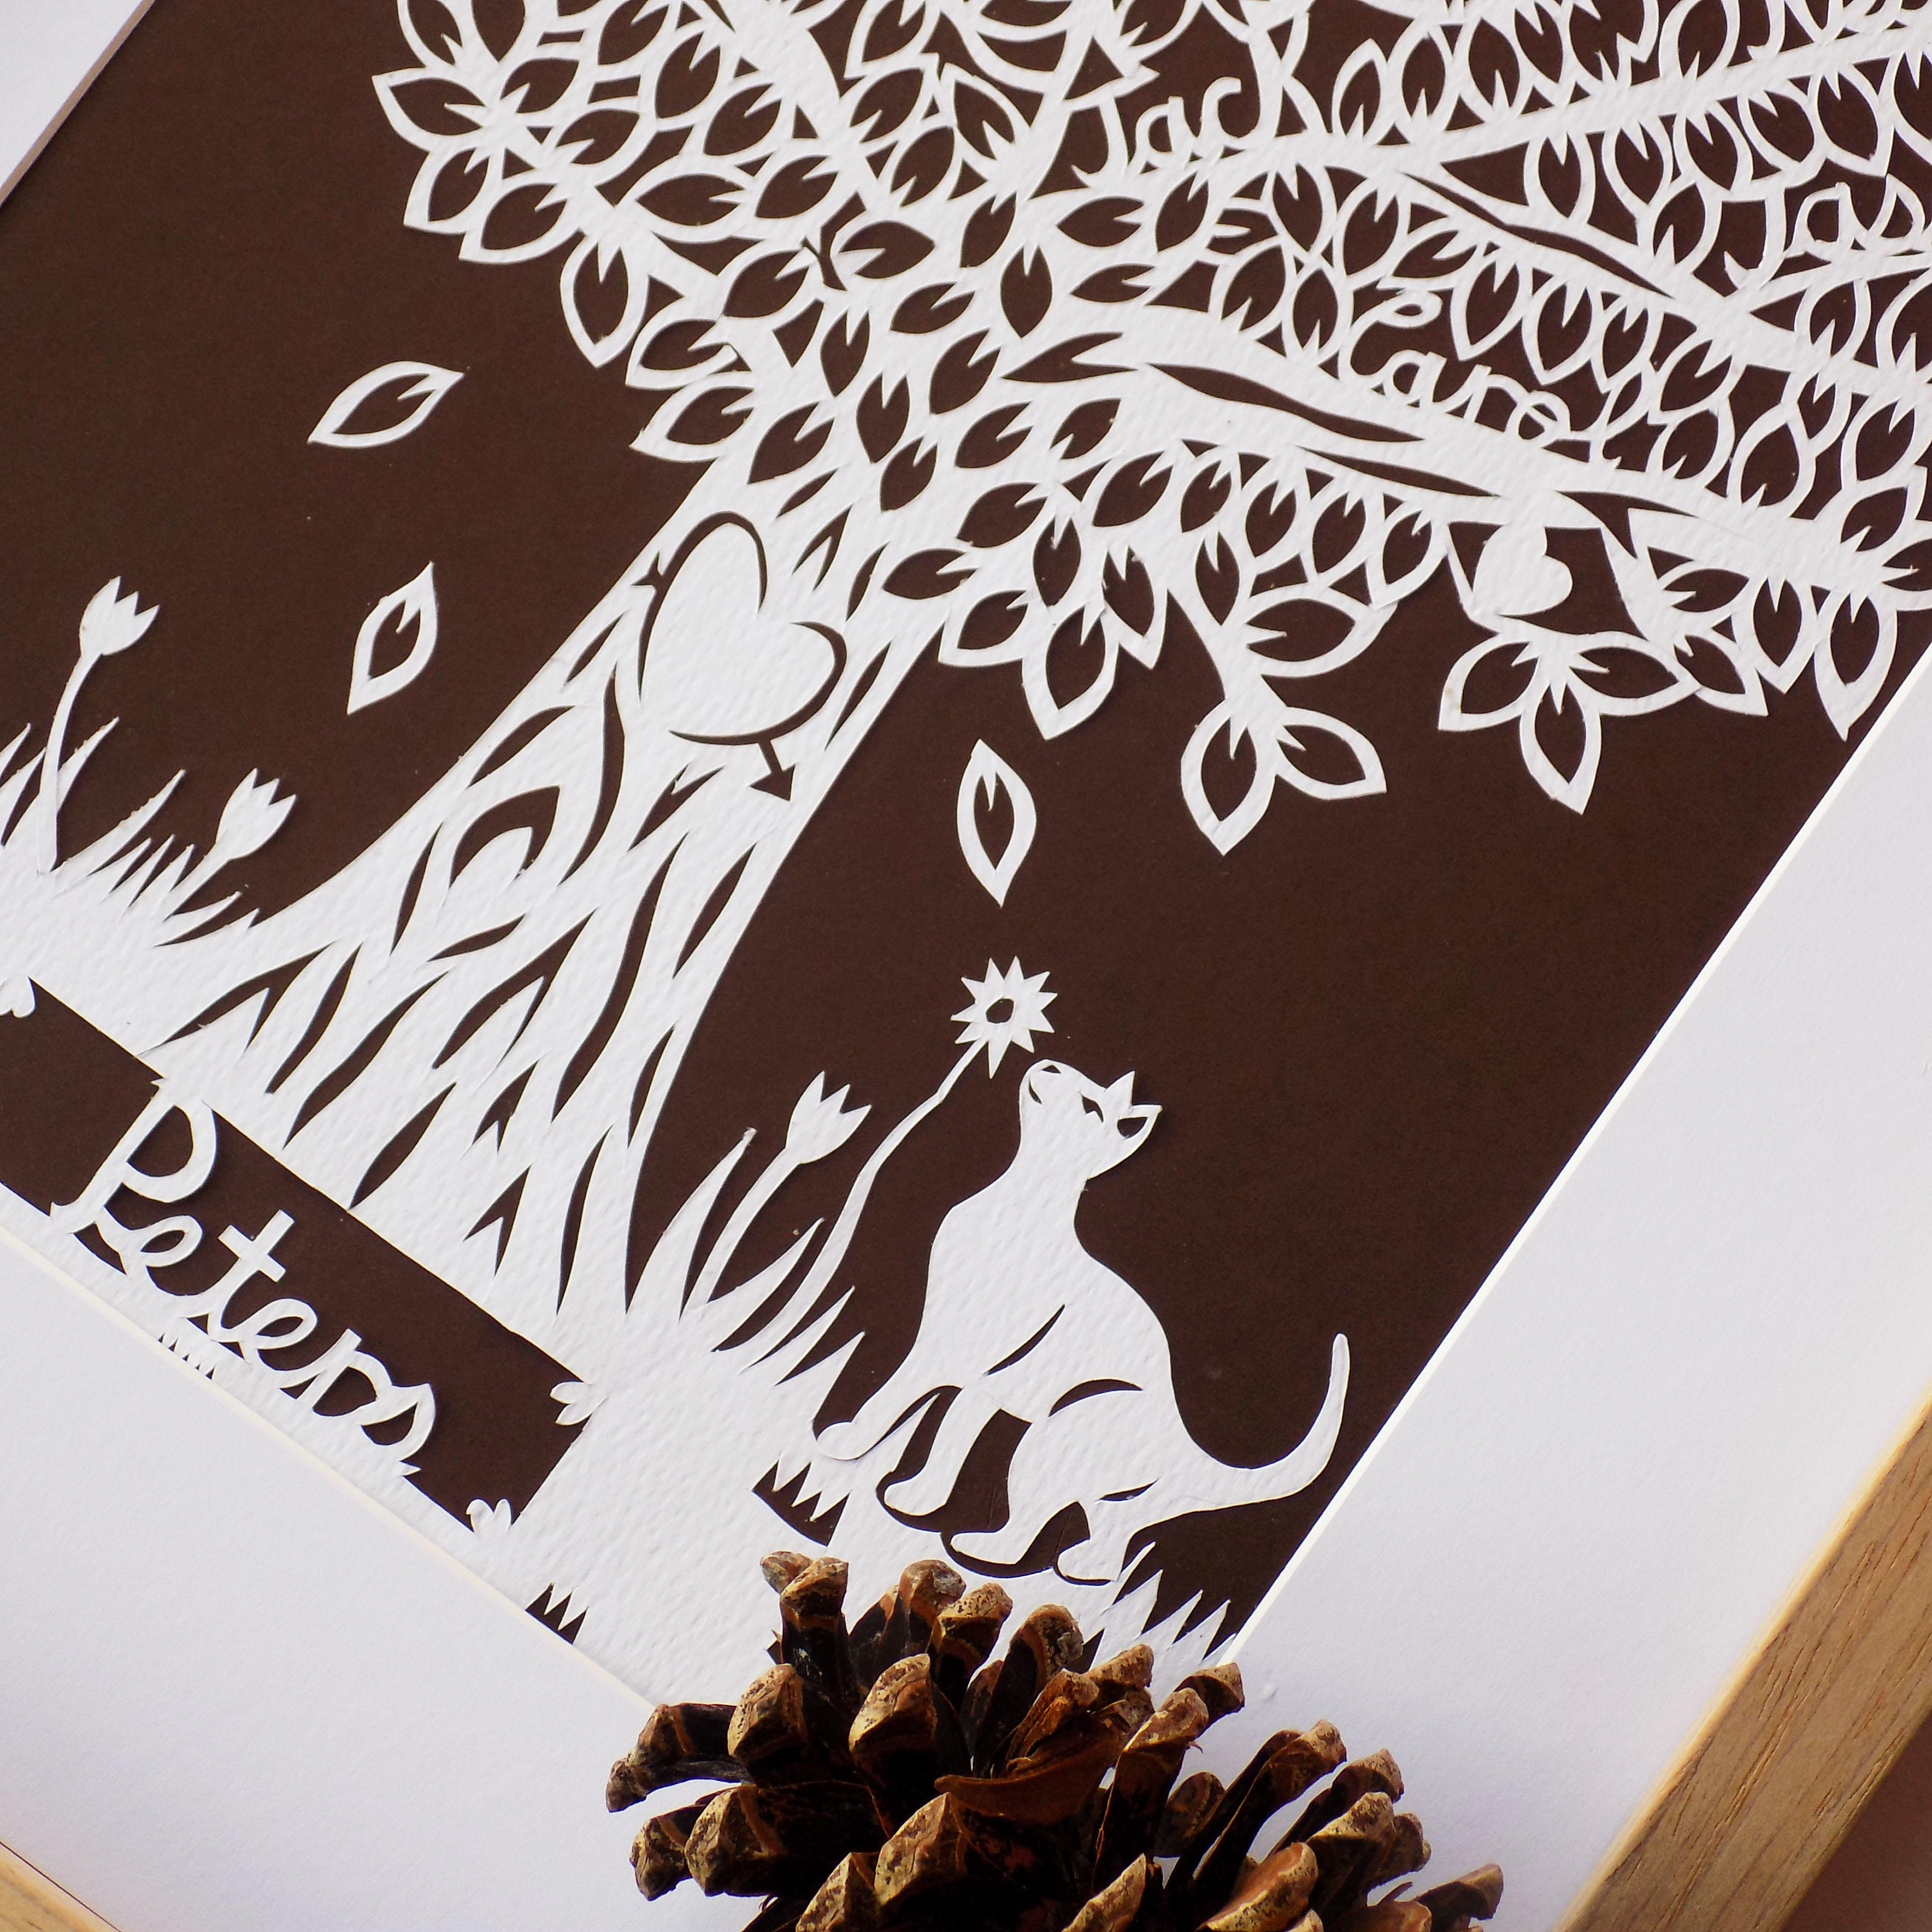 A second close up of a family tree paper cut